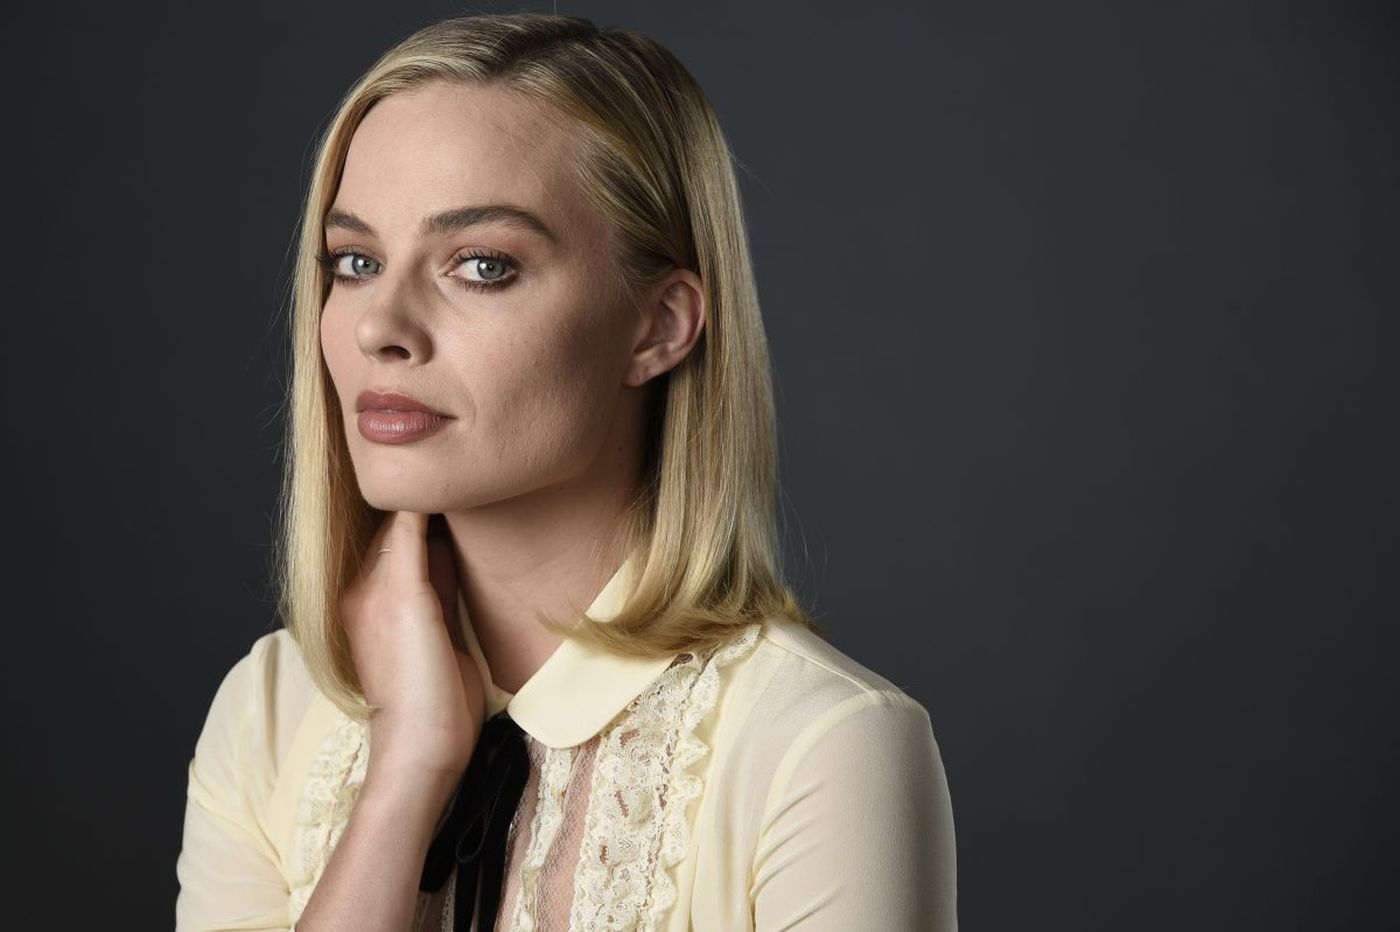 Margot Robbie on the 'tricky dance' of domestic violence in 'I, Tonya'